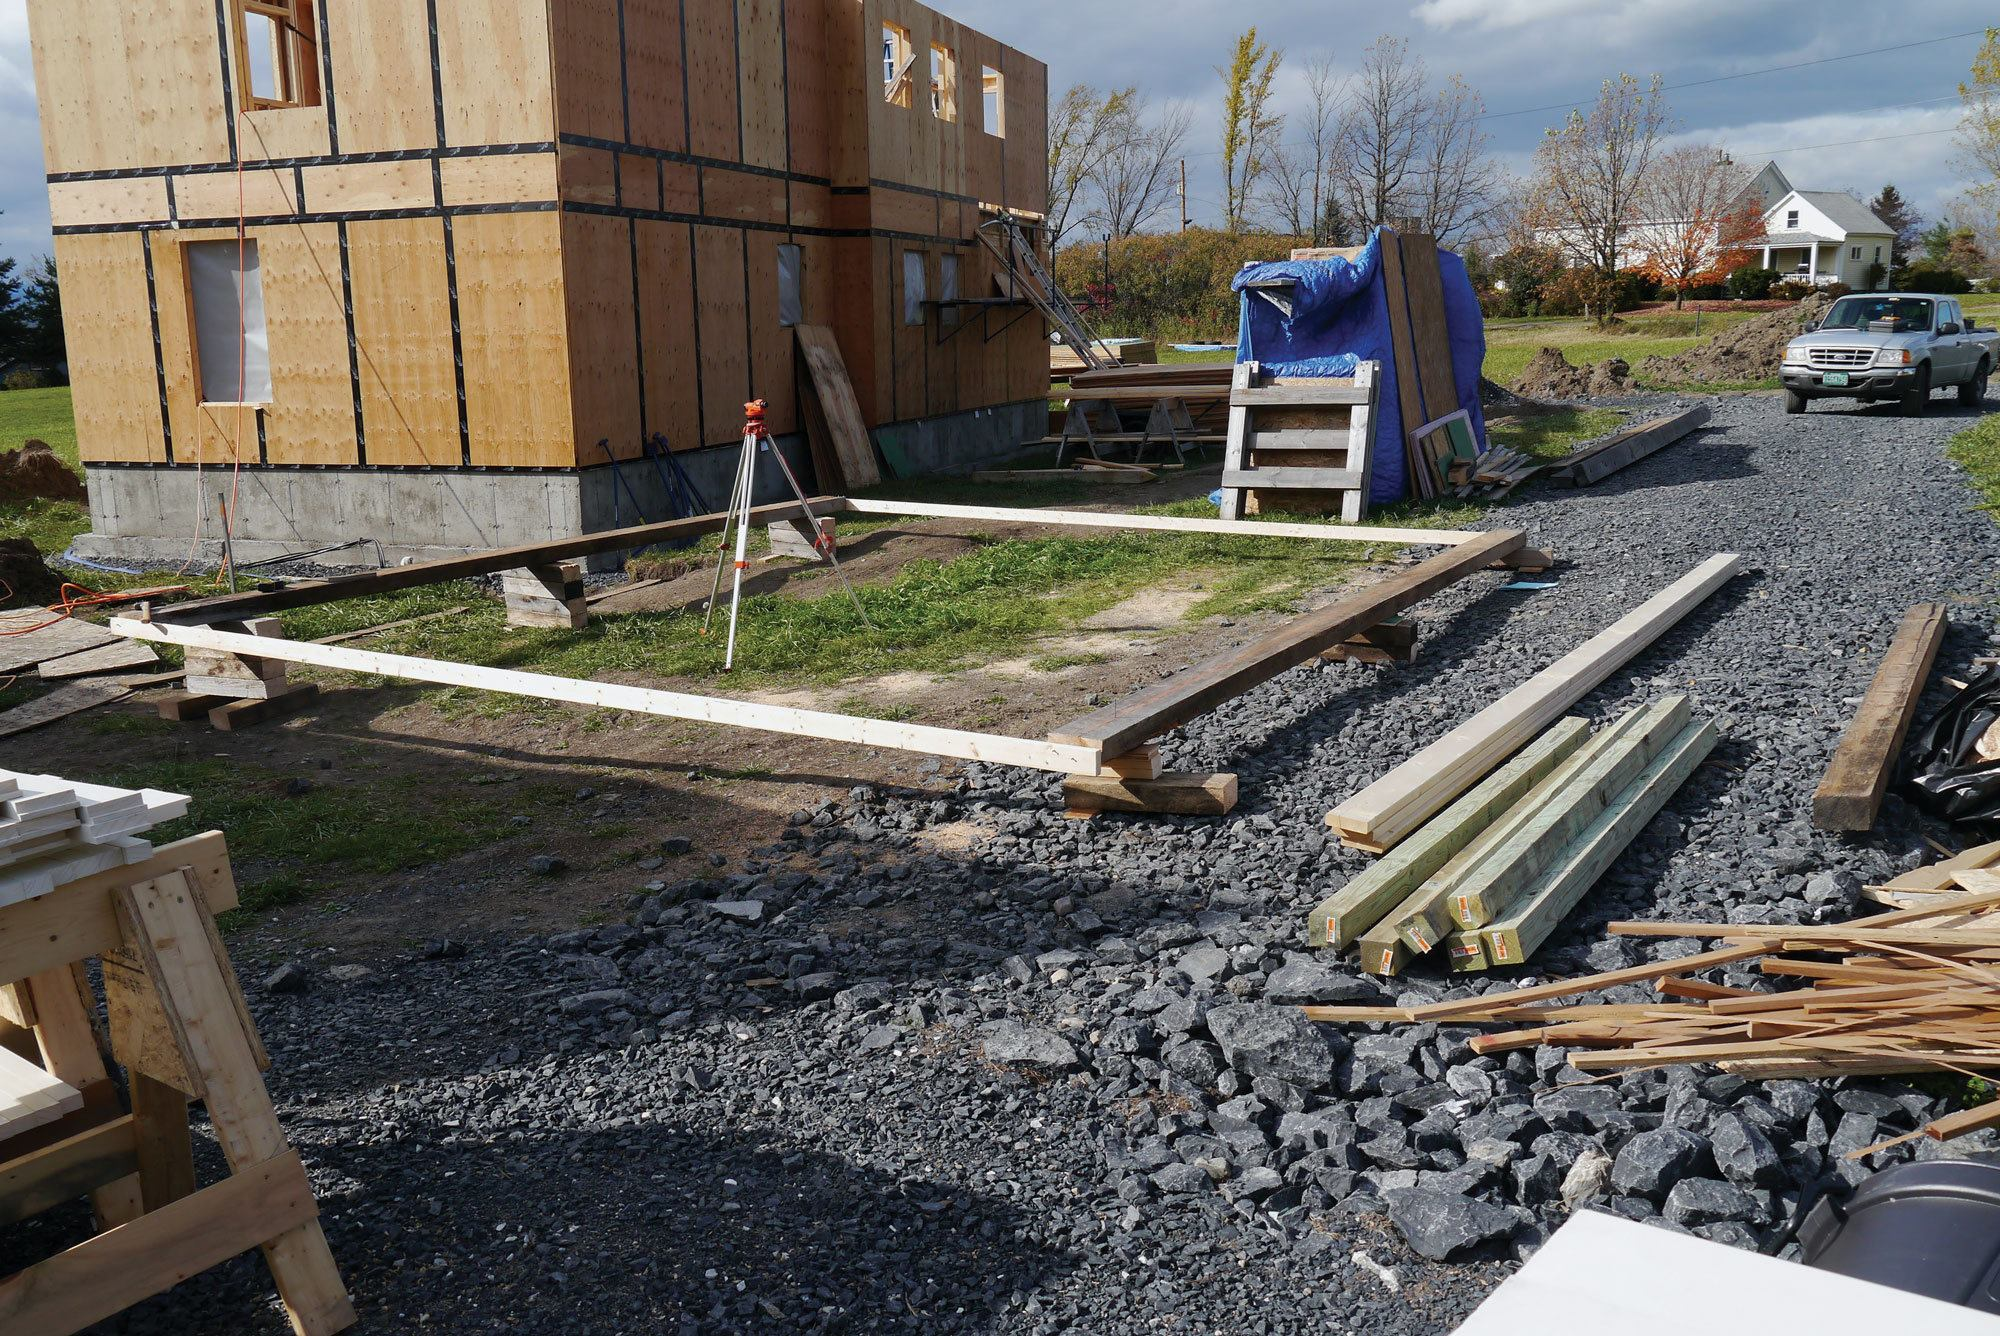 How To Safely Frame A Roof On The Ground Jlc Online